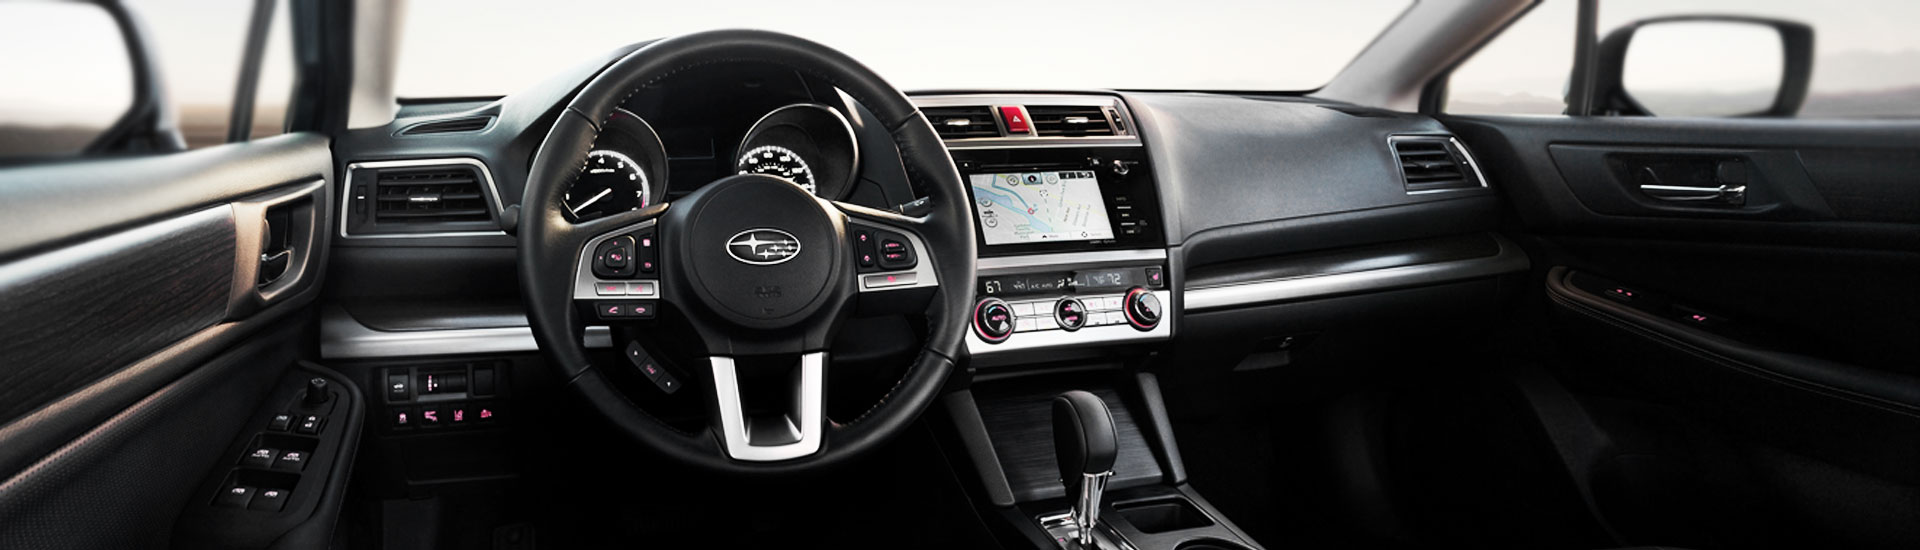 Subaru Outback Custom Dash Kits